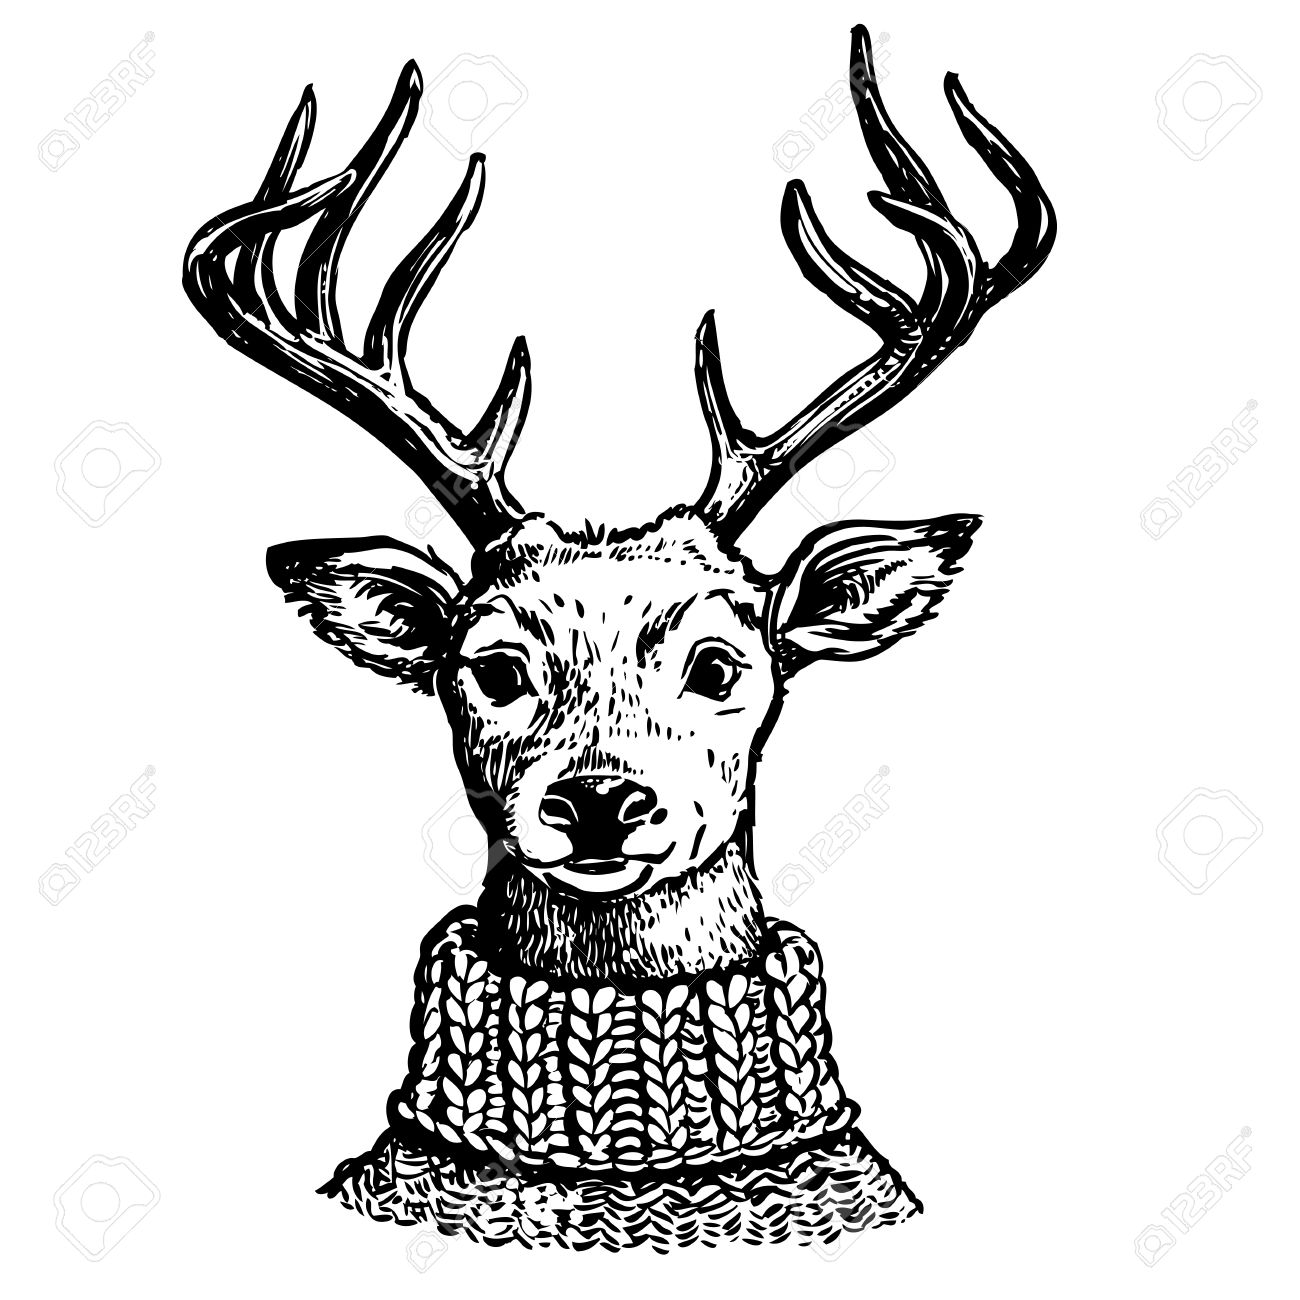 1300x1300 Hand Drawn Pen And Ink Vector Drawing Of A Reindeer Head. Funny